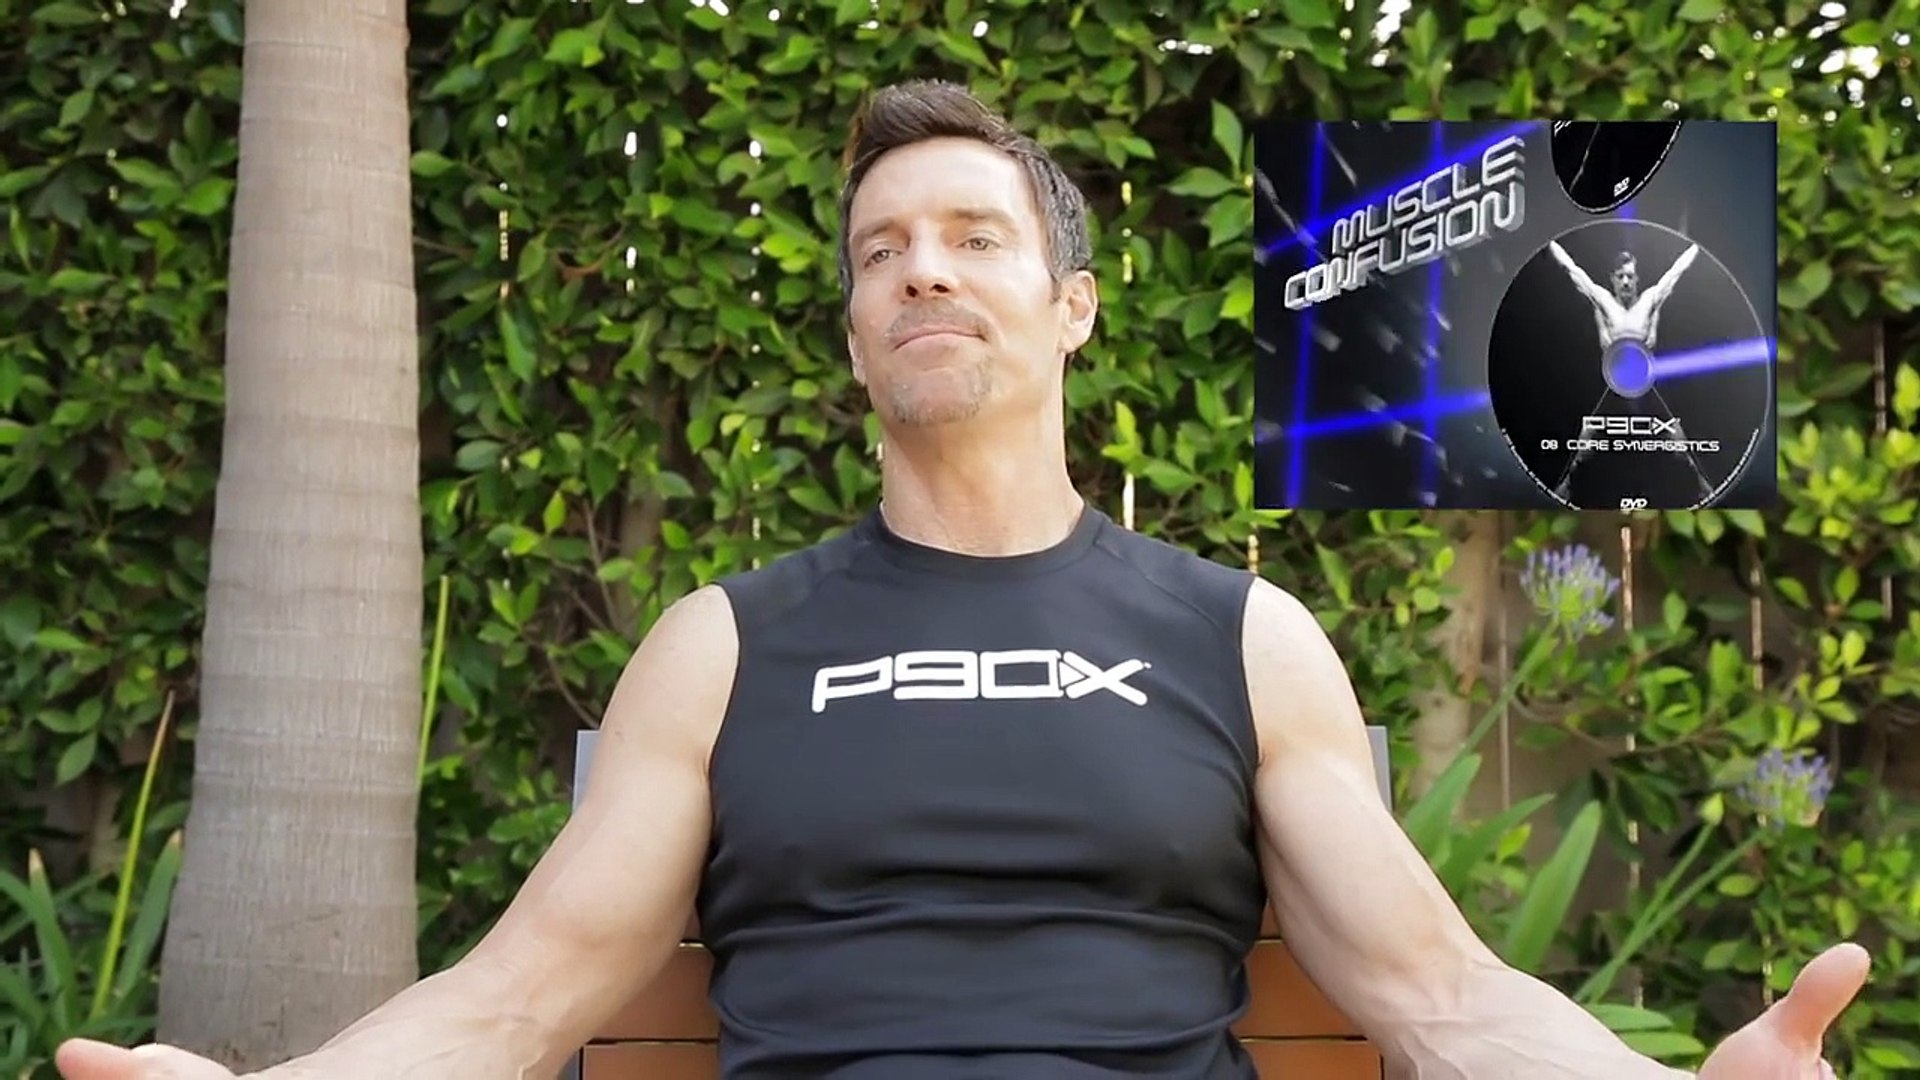 P90X | The Untold Story